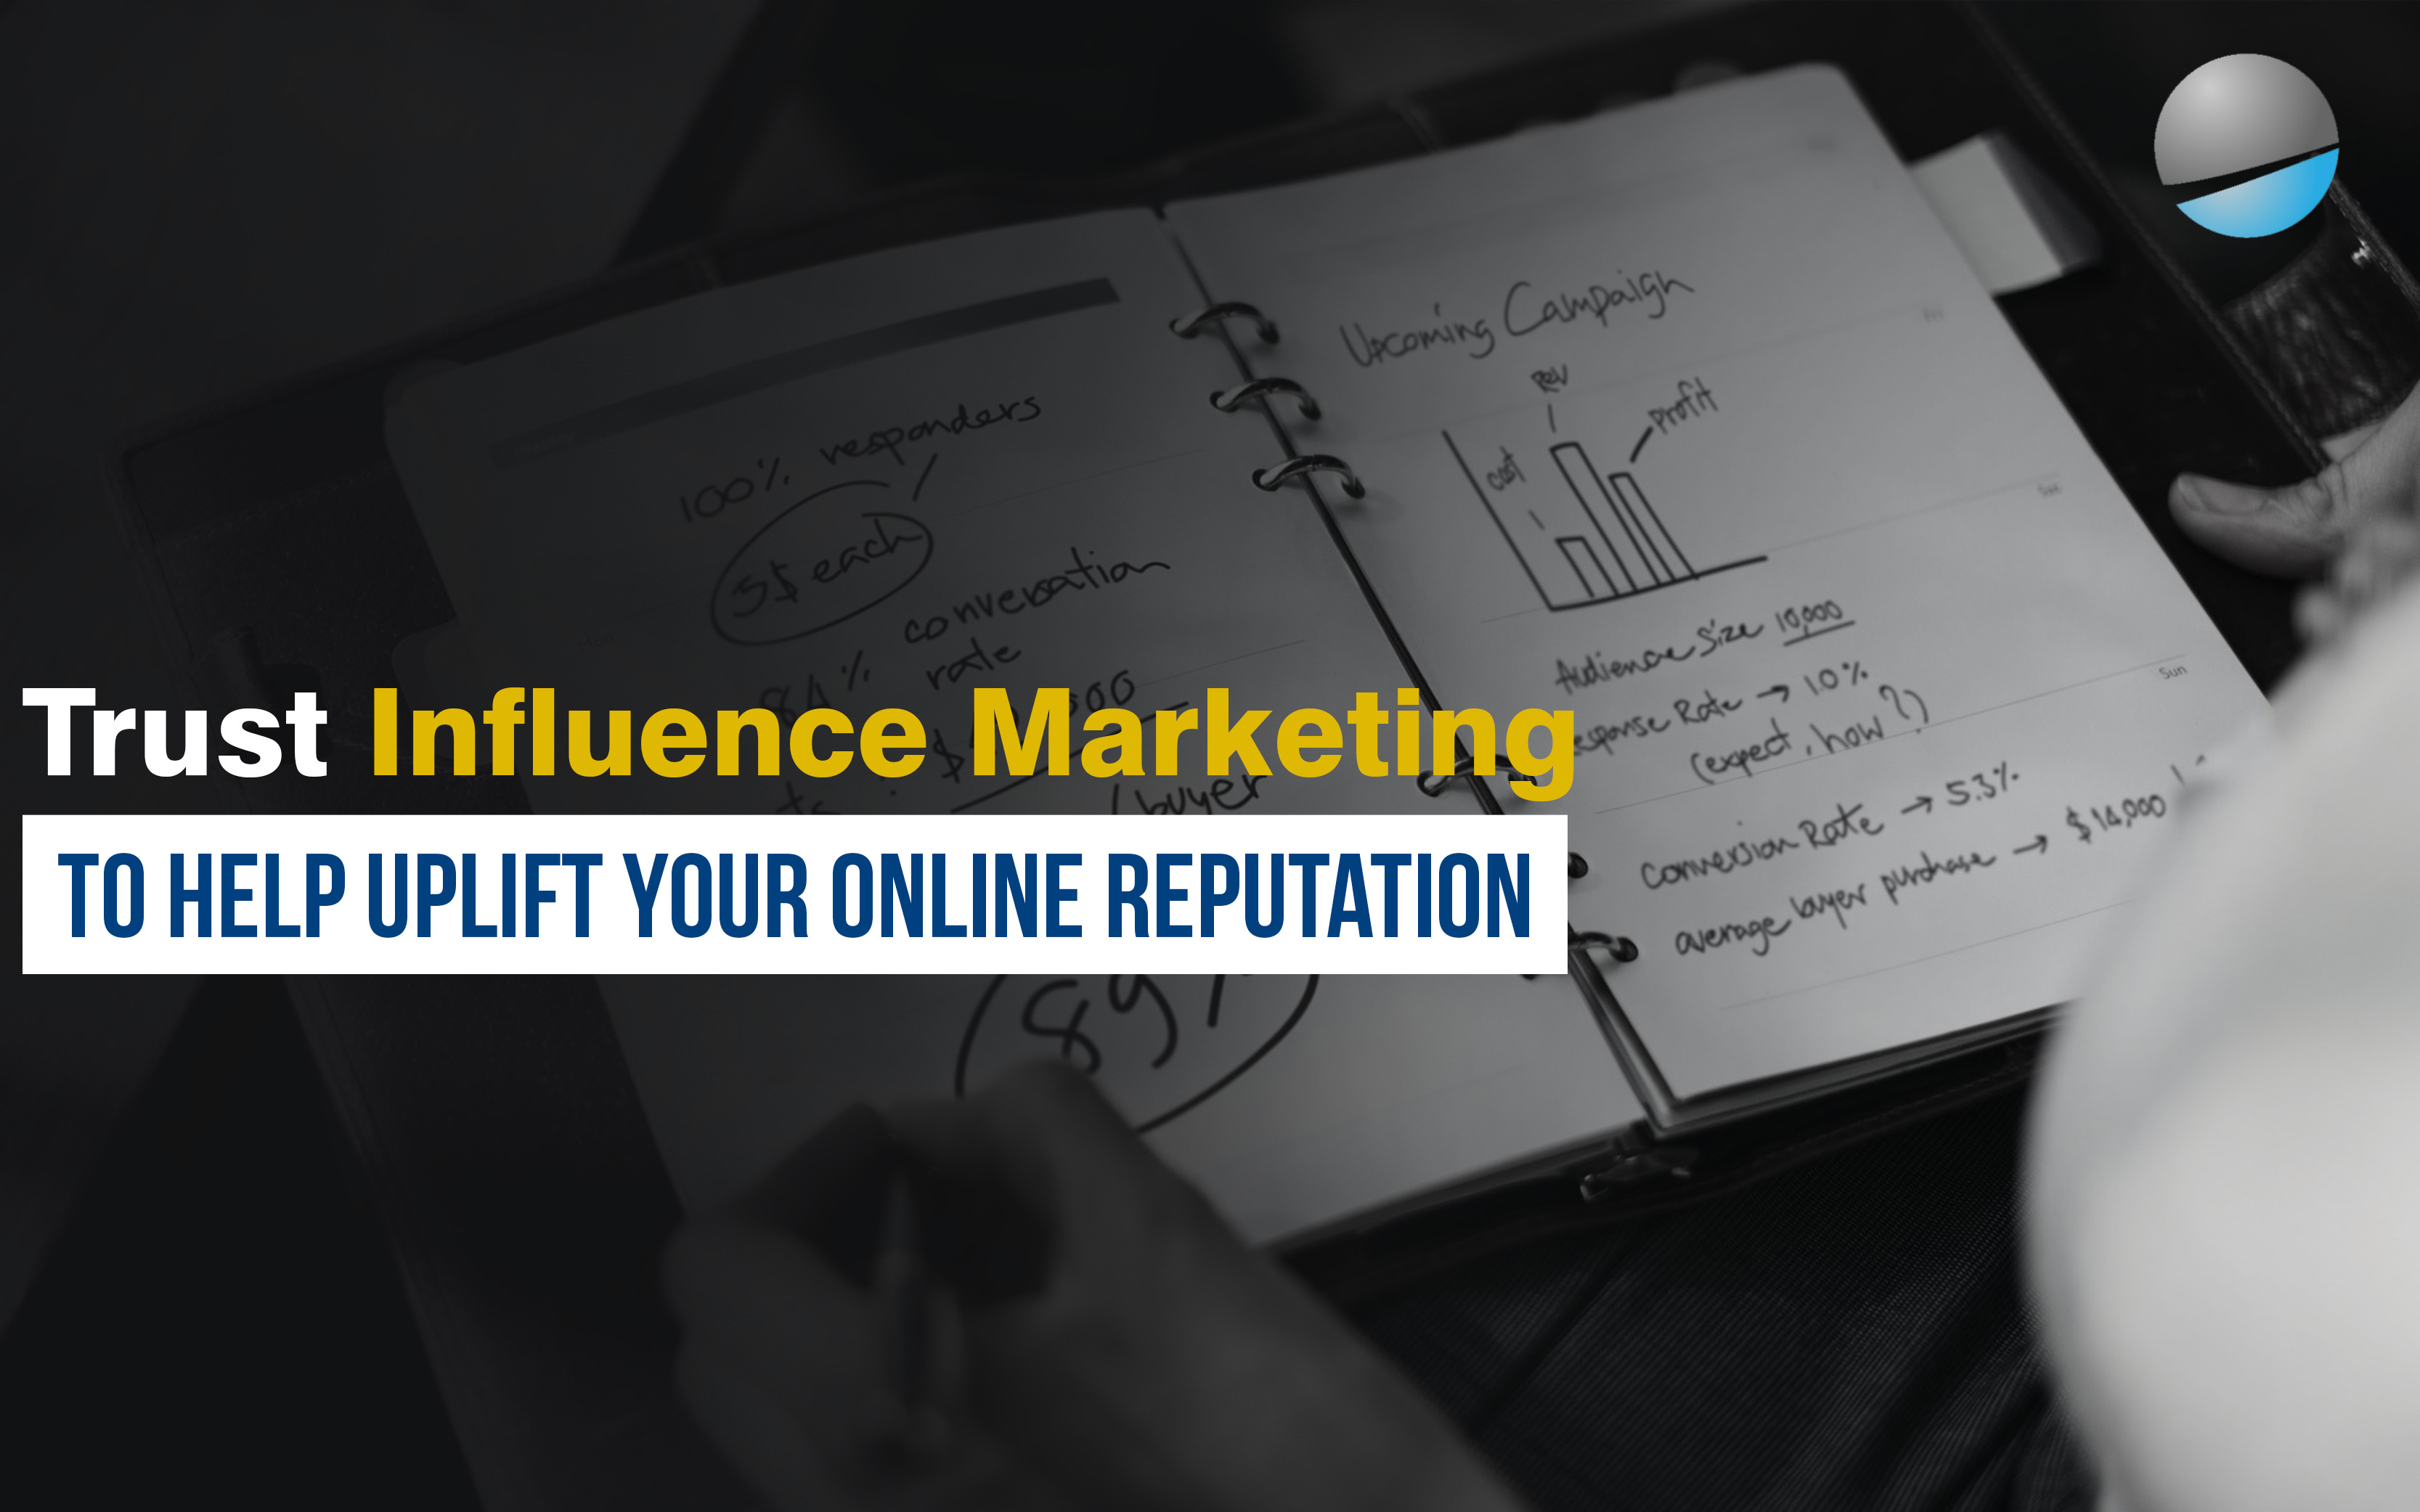 Trust Influence Marketing to Help Uplift Your Online Reputation